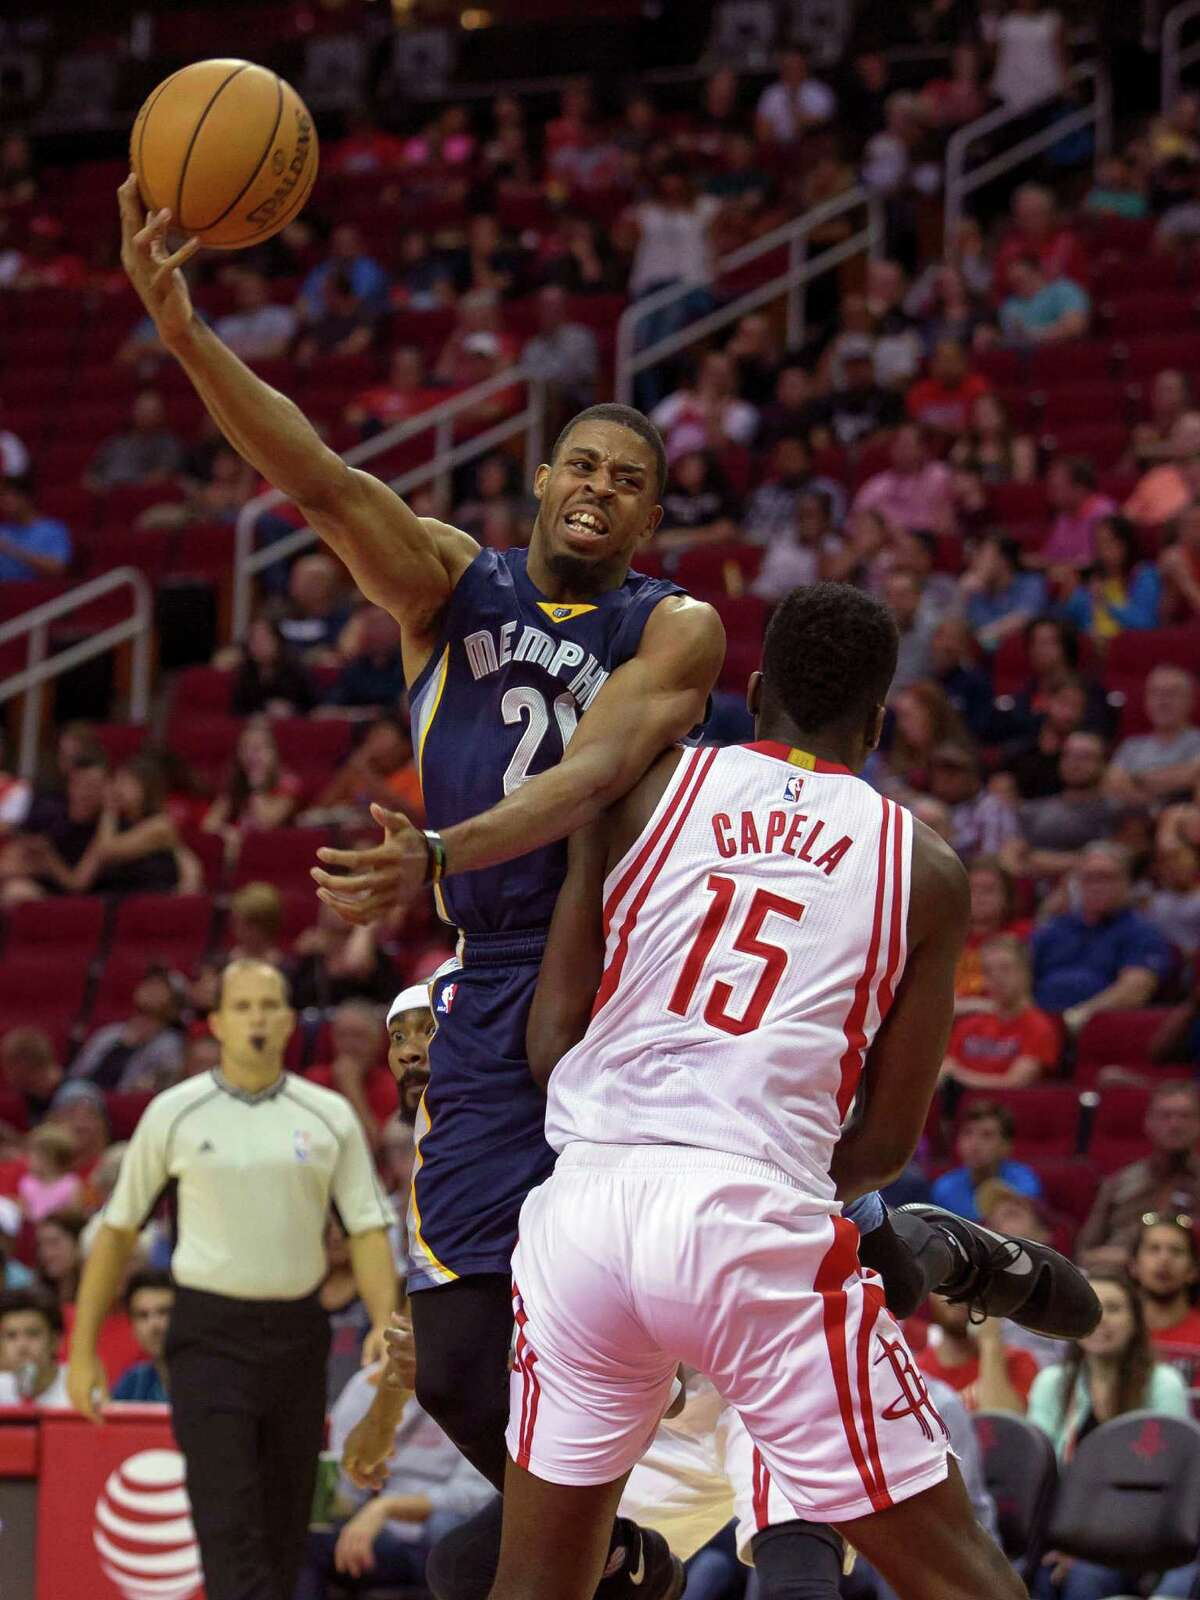 Memphis Grizzlies guard D.J. Stephens, top, shoots over Houston Rockets' Clint Capela in the first half of a preseason NBA basketball game Saturday, Oct. 15, 2016, in Houston. (AP Photo/Richard Carson)